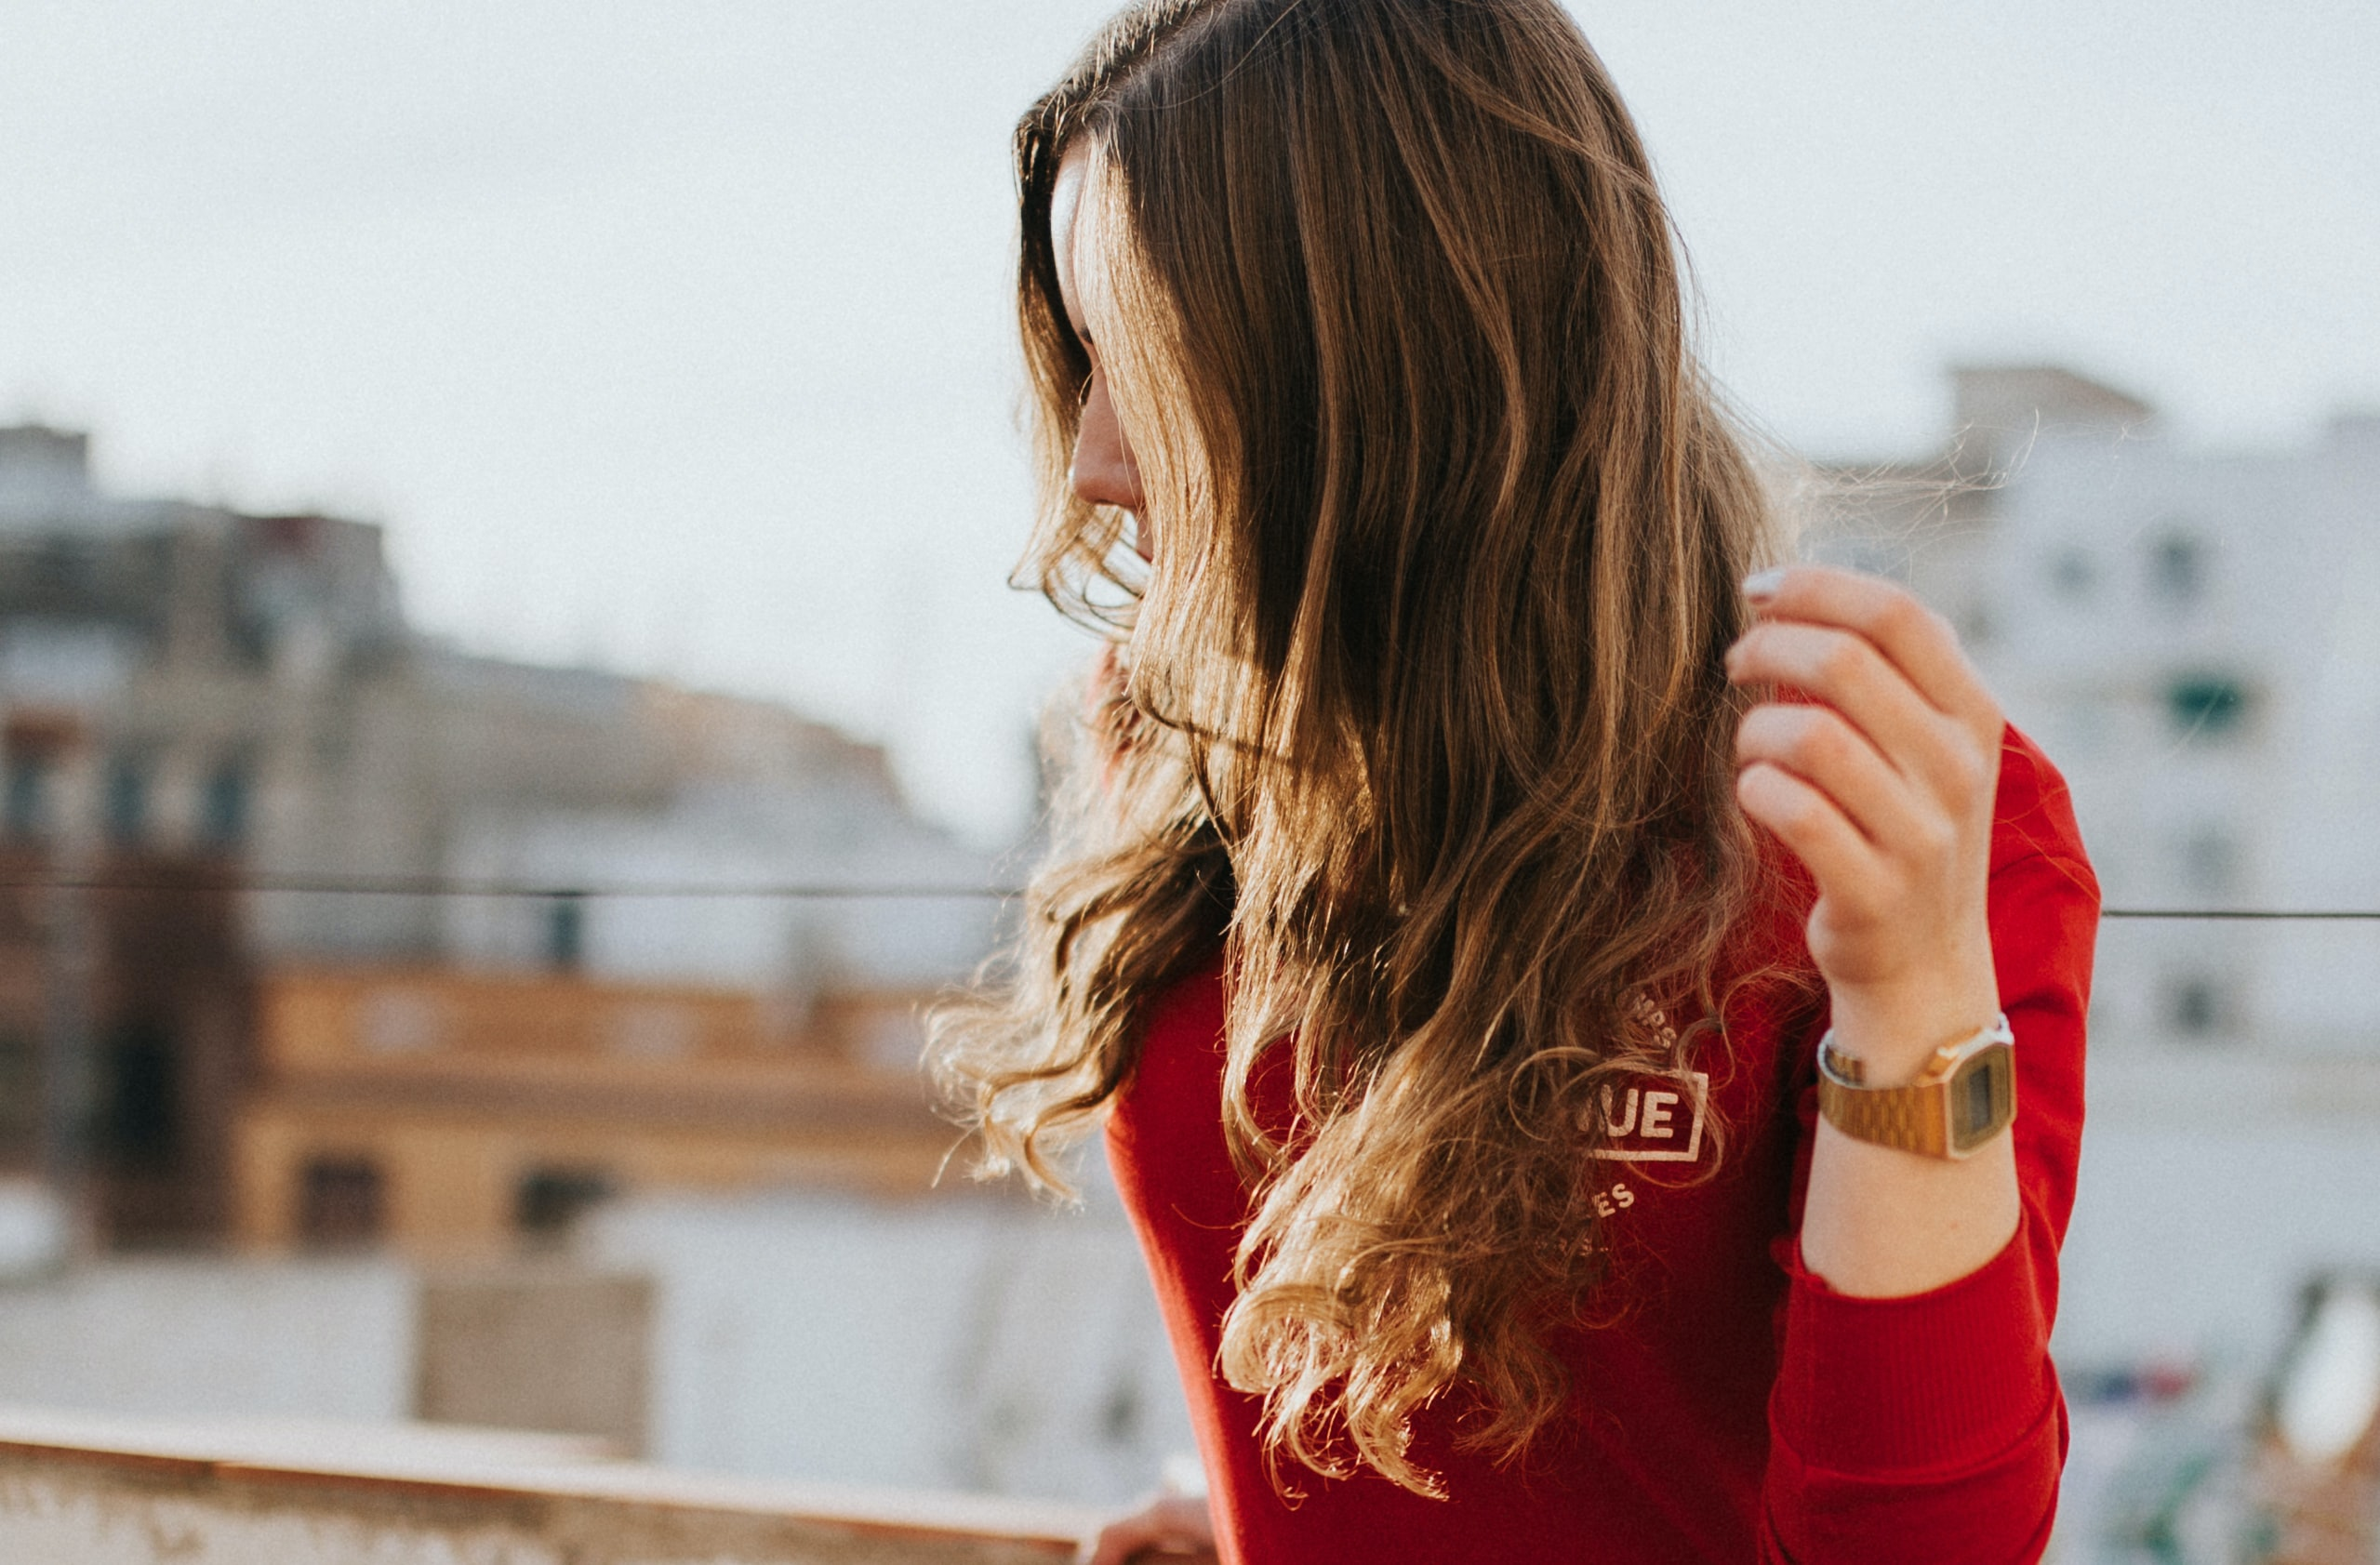 A woman in a red sweater with her hair obscuring her face outdoors